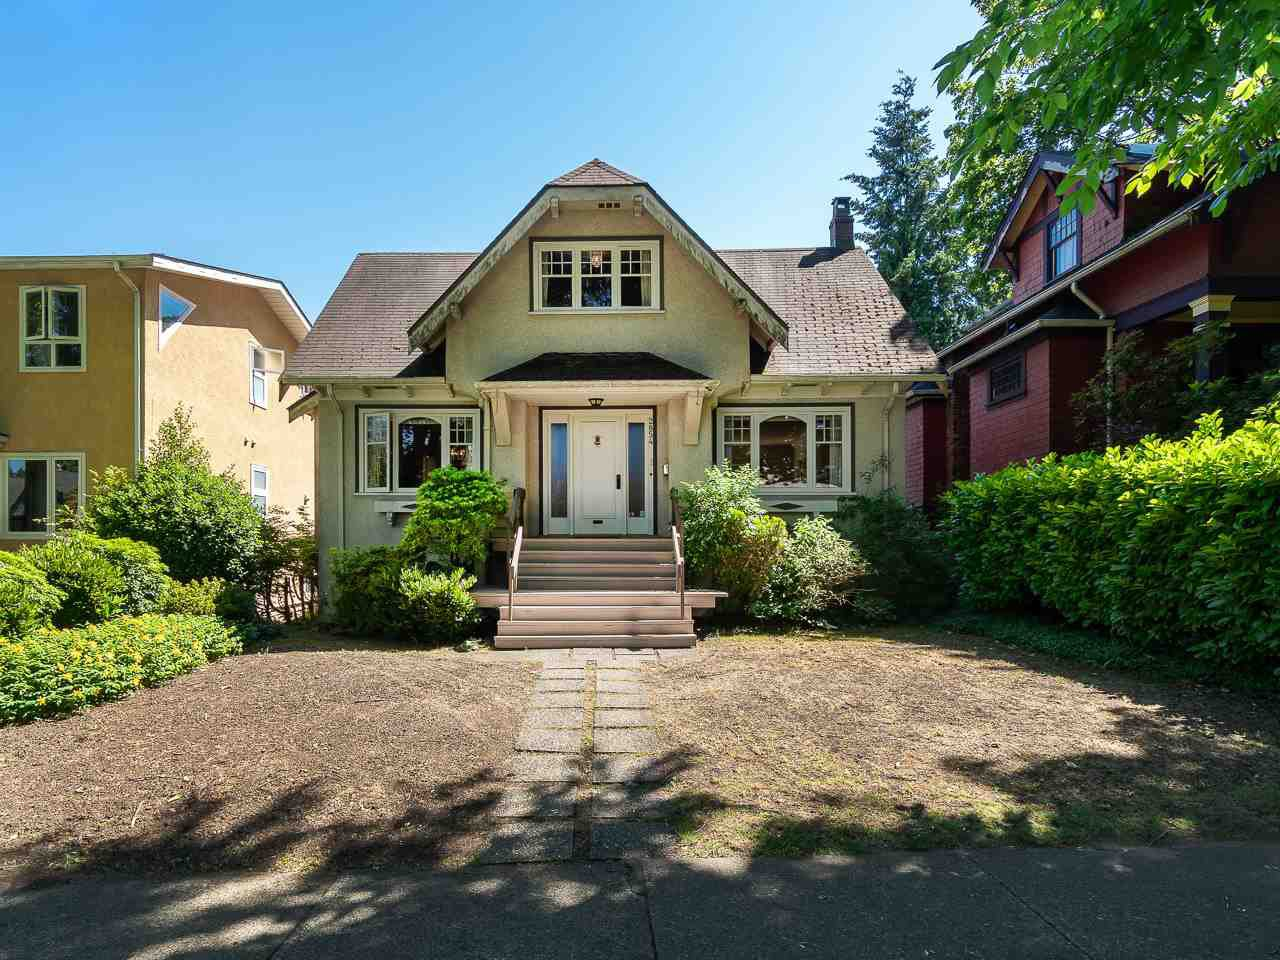 Main Photo: 2854 W 38TH AVENUE in Vancouver: Kerrisdale House for sale (Vancouver West)  : MLS®# R2282420